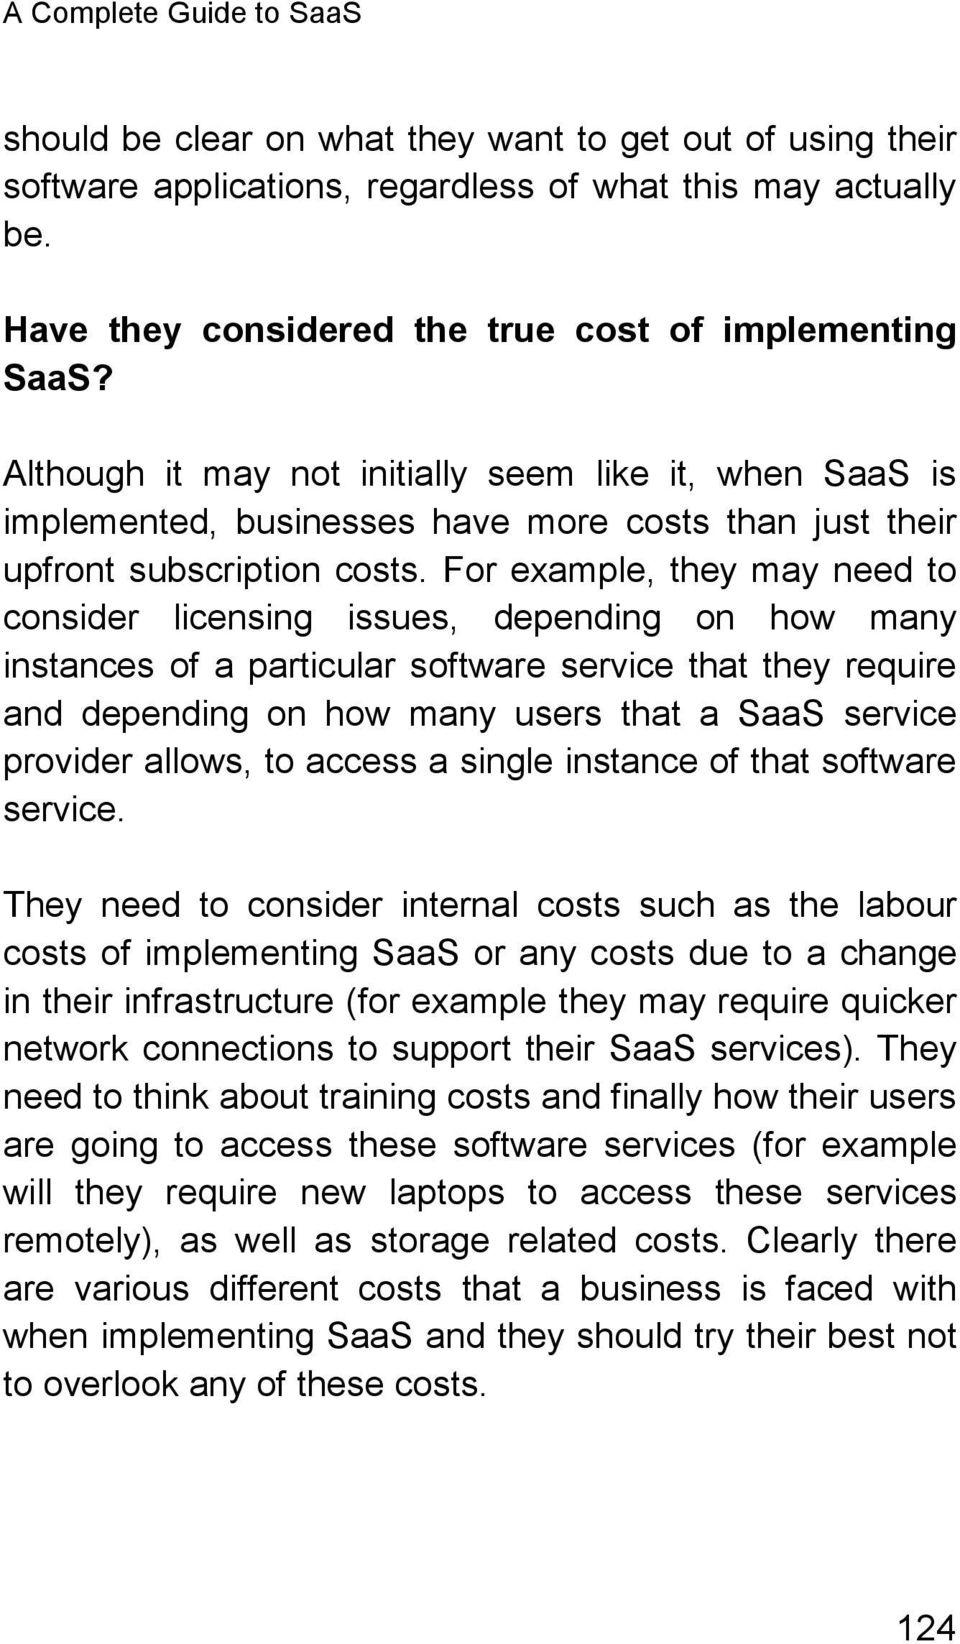 For example, they may need to consider licensing issues, depending on how many instances of a particular software service that they require and depending on how many users that a SaaS service